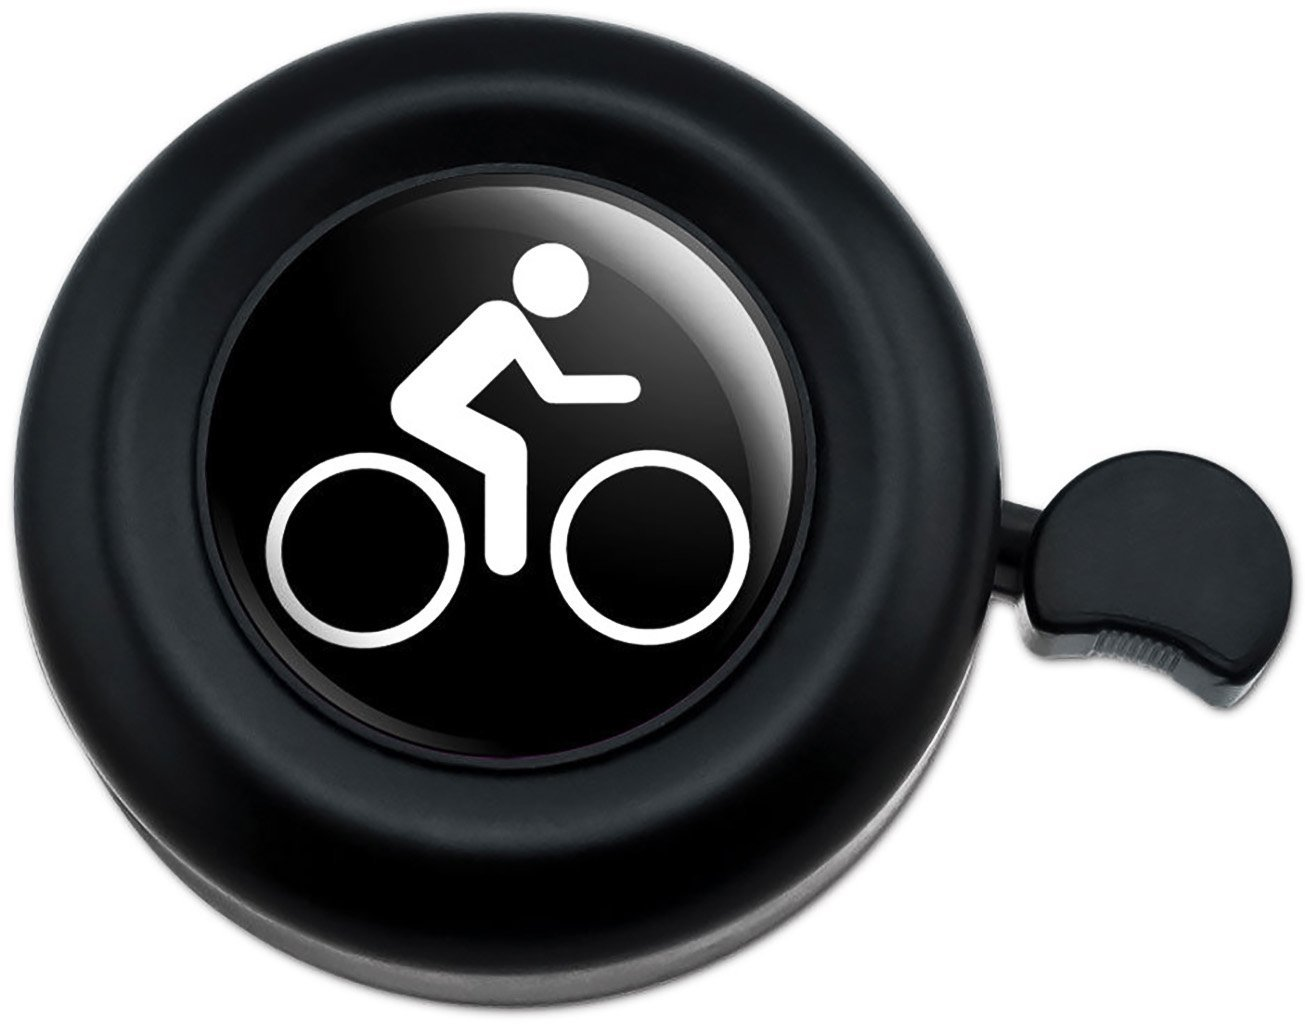 Cool and Custom {Fully Adjustable to Fit Most Bikes} Bicycle Handlebar Bell Made of Hard Metal Biking Cycling Symbol Design {Black and White Colors}